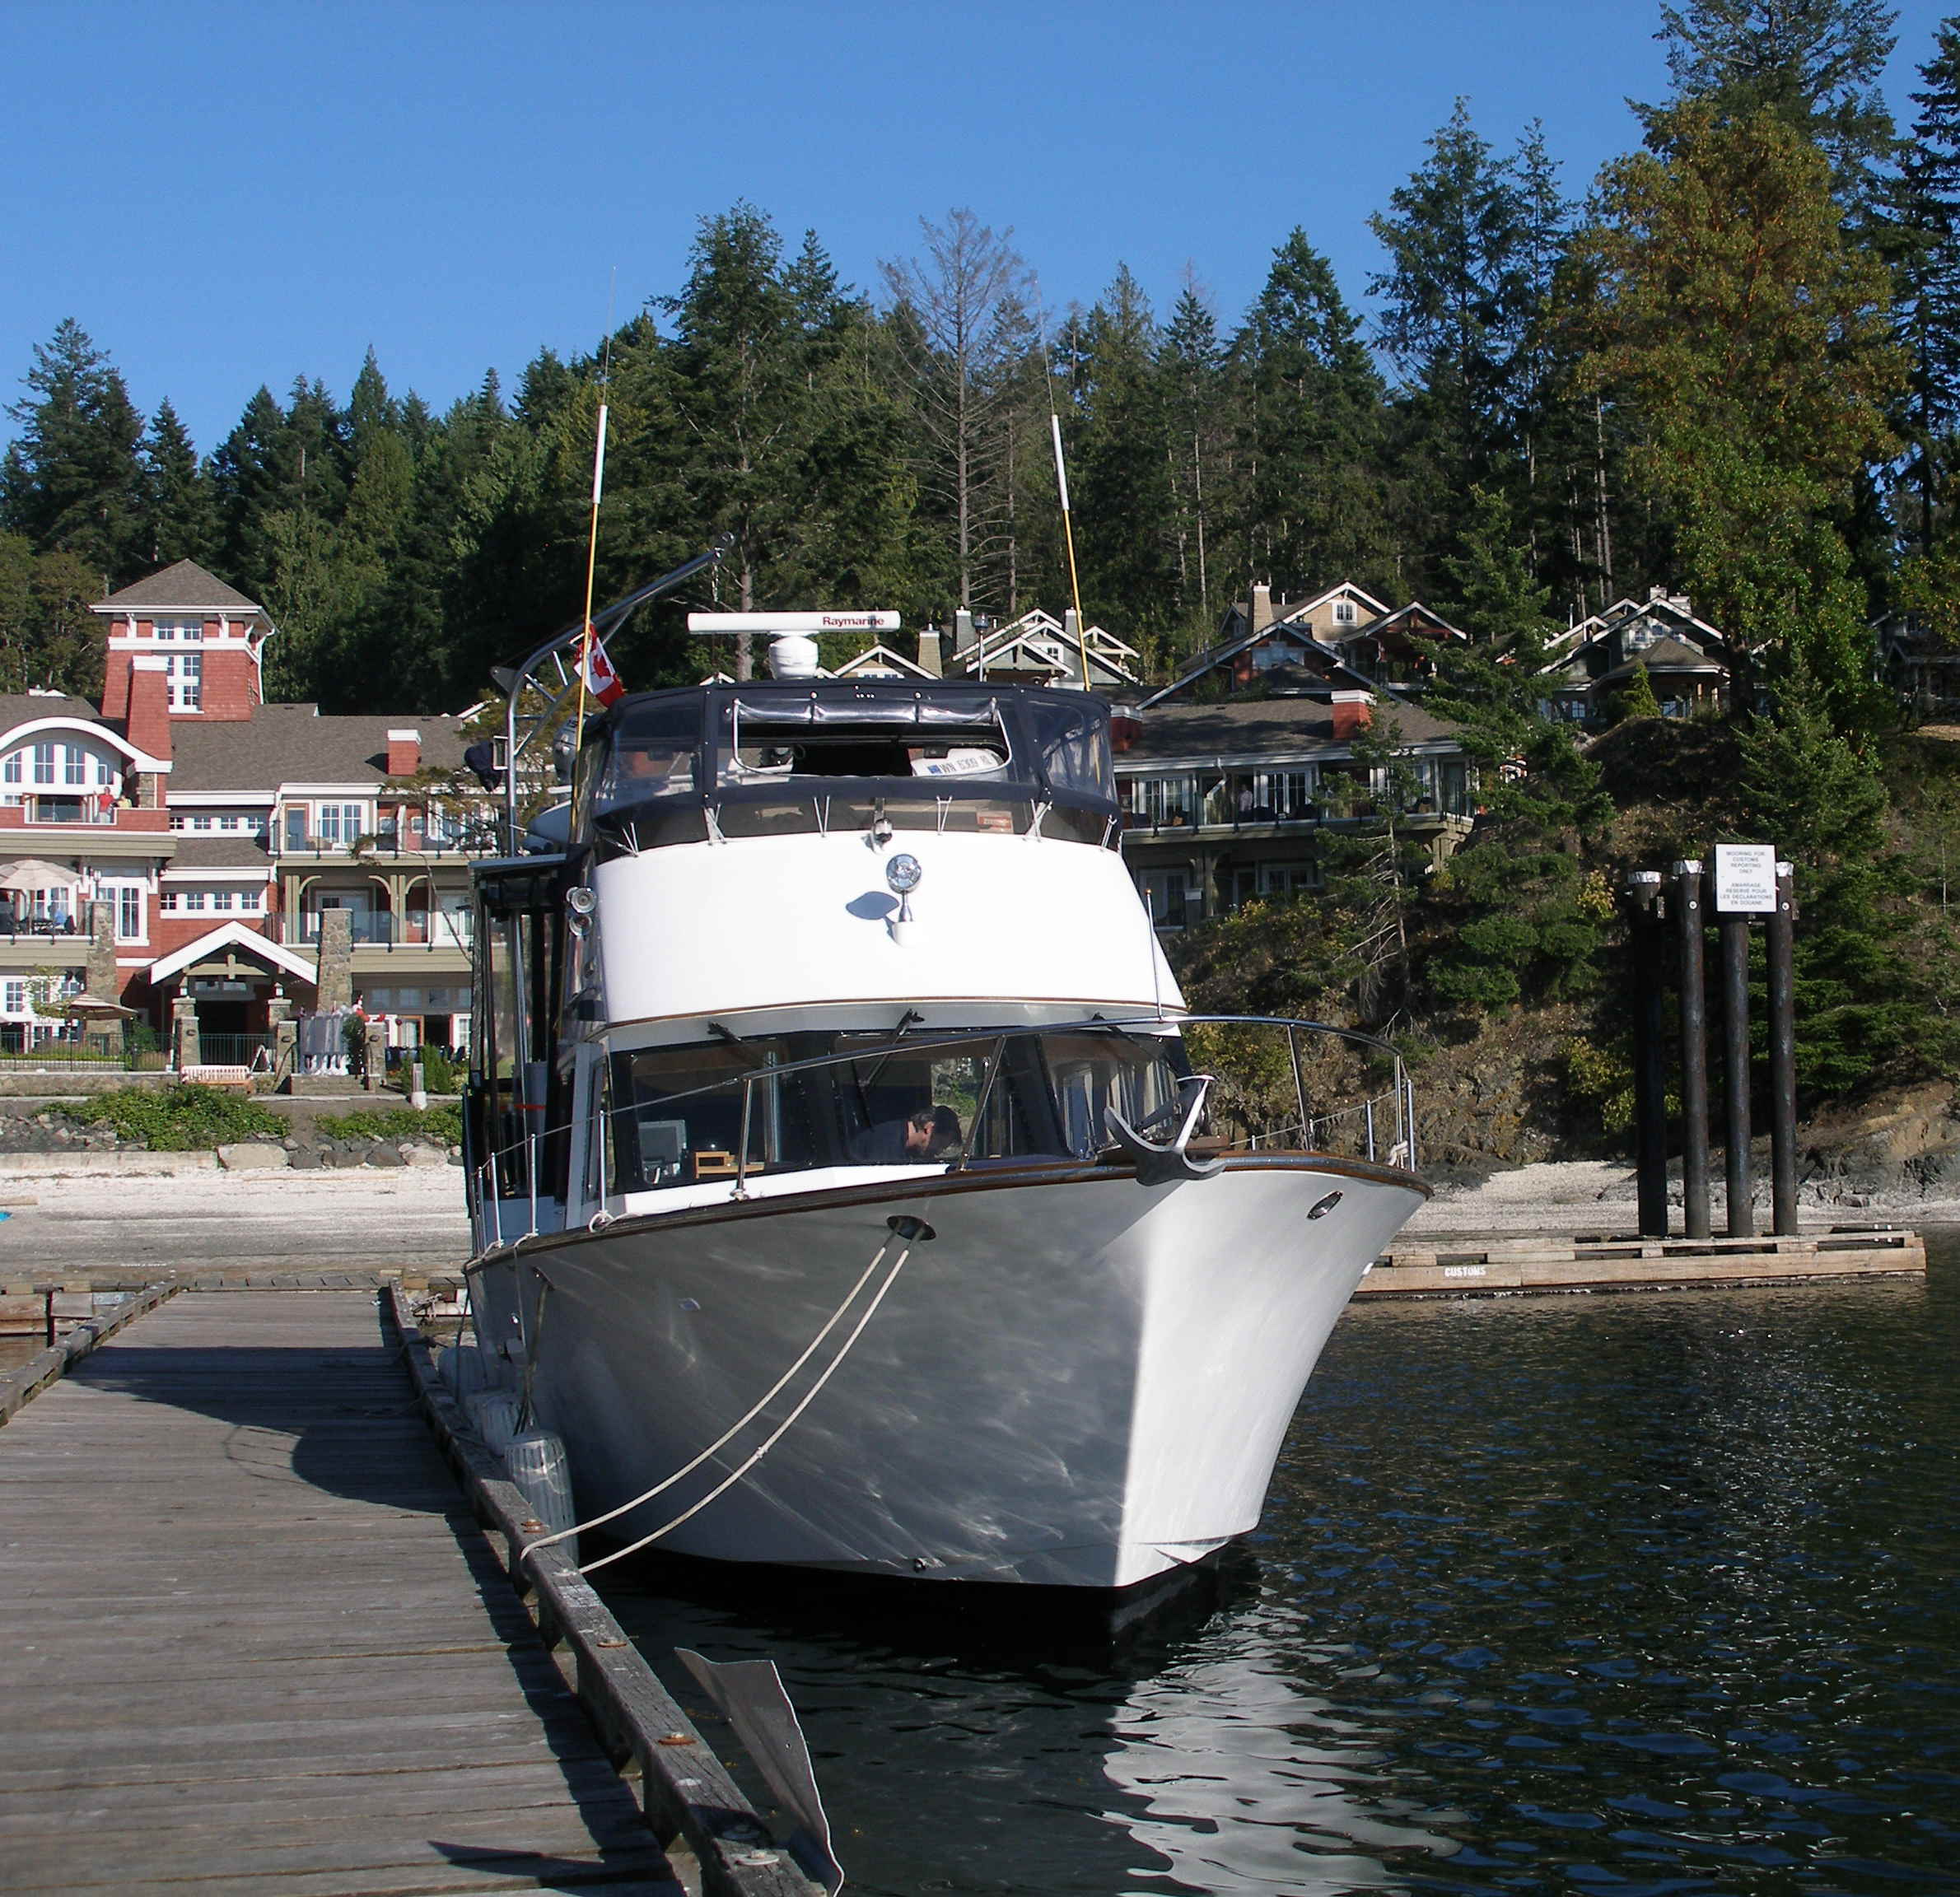 The Best Friends heading north at South Pender Island, British Columbia